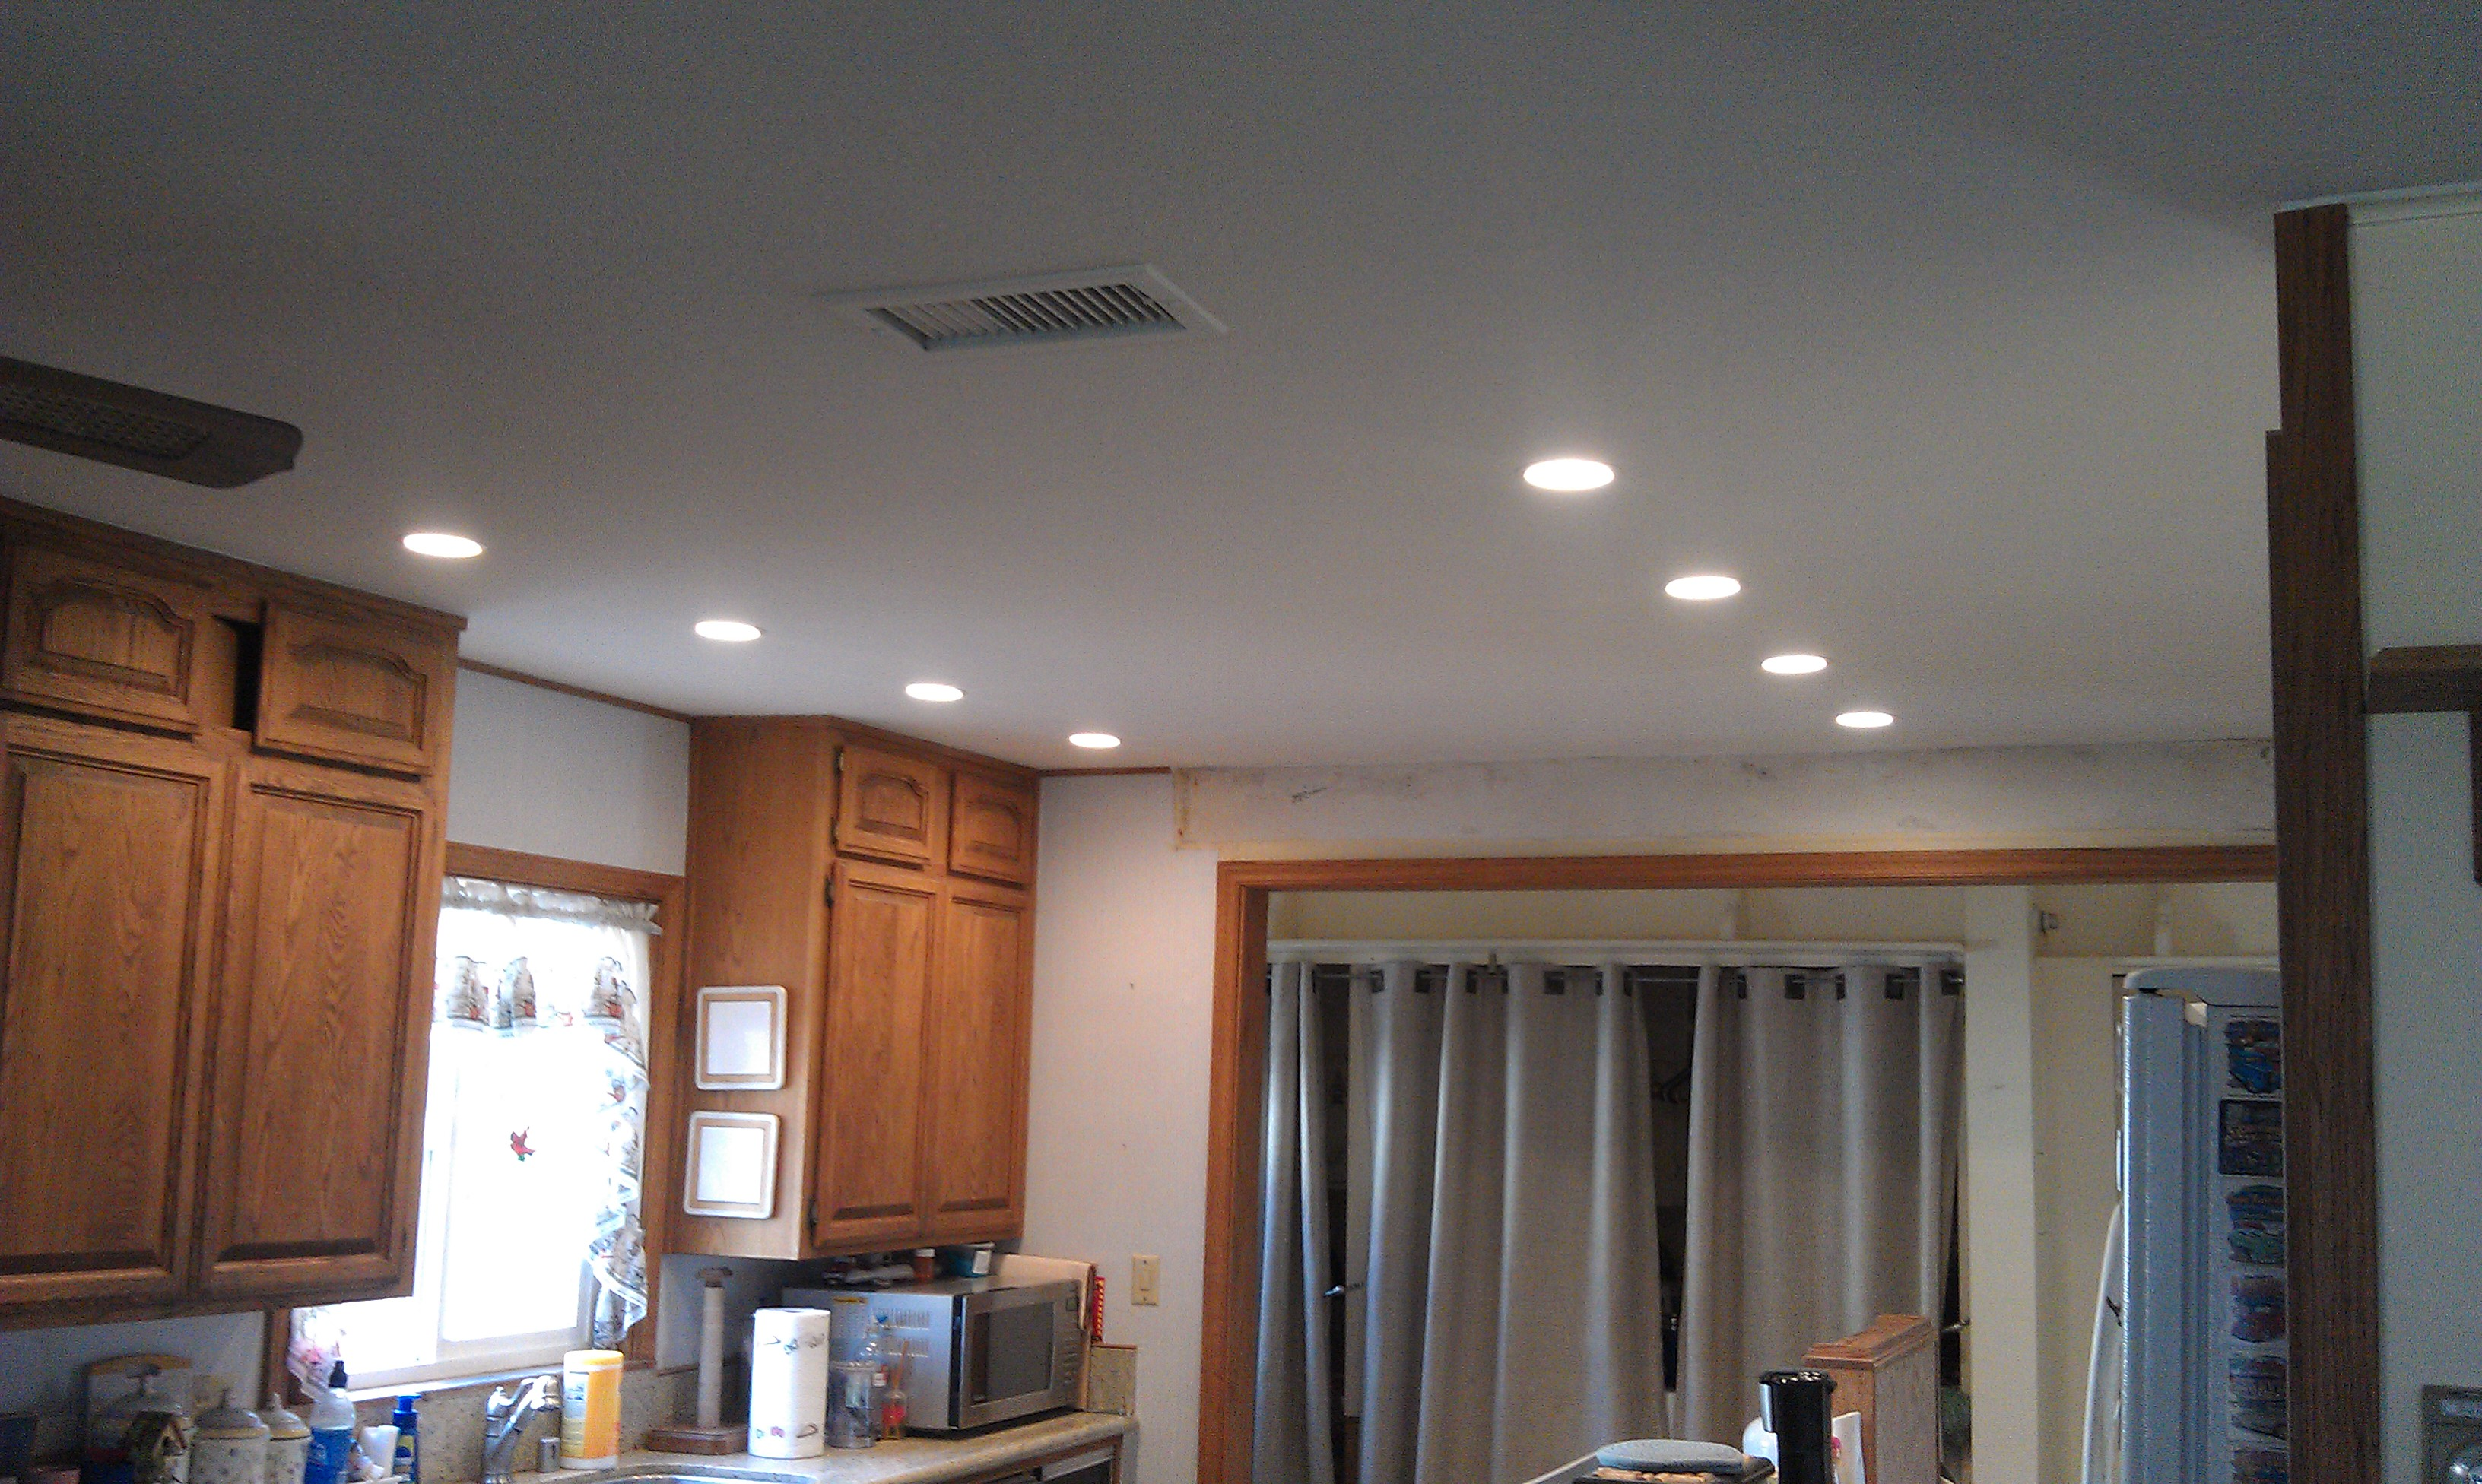 Cordless Lamps Ikea How To Install Recessed Lighting For Dramatic Effect The